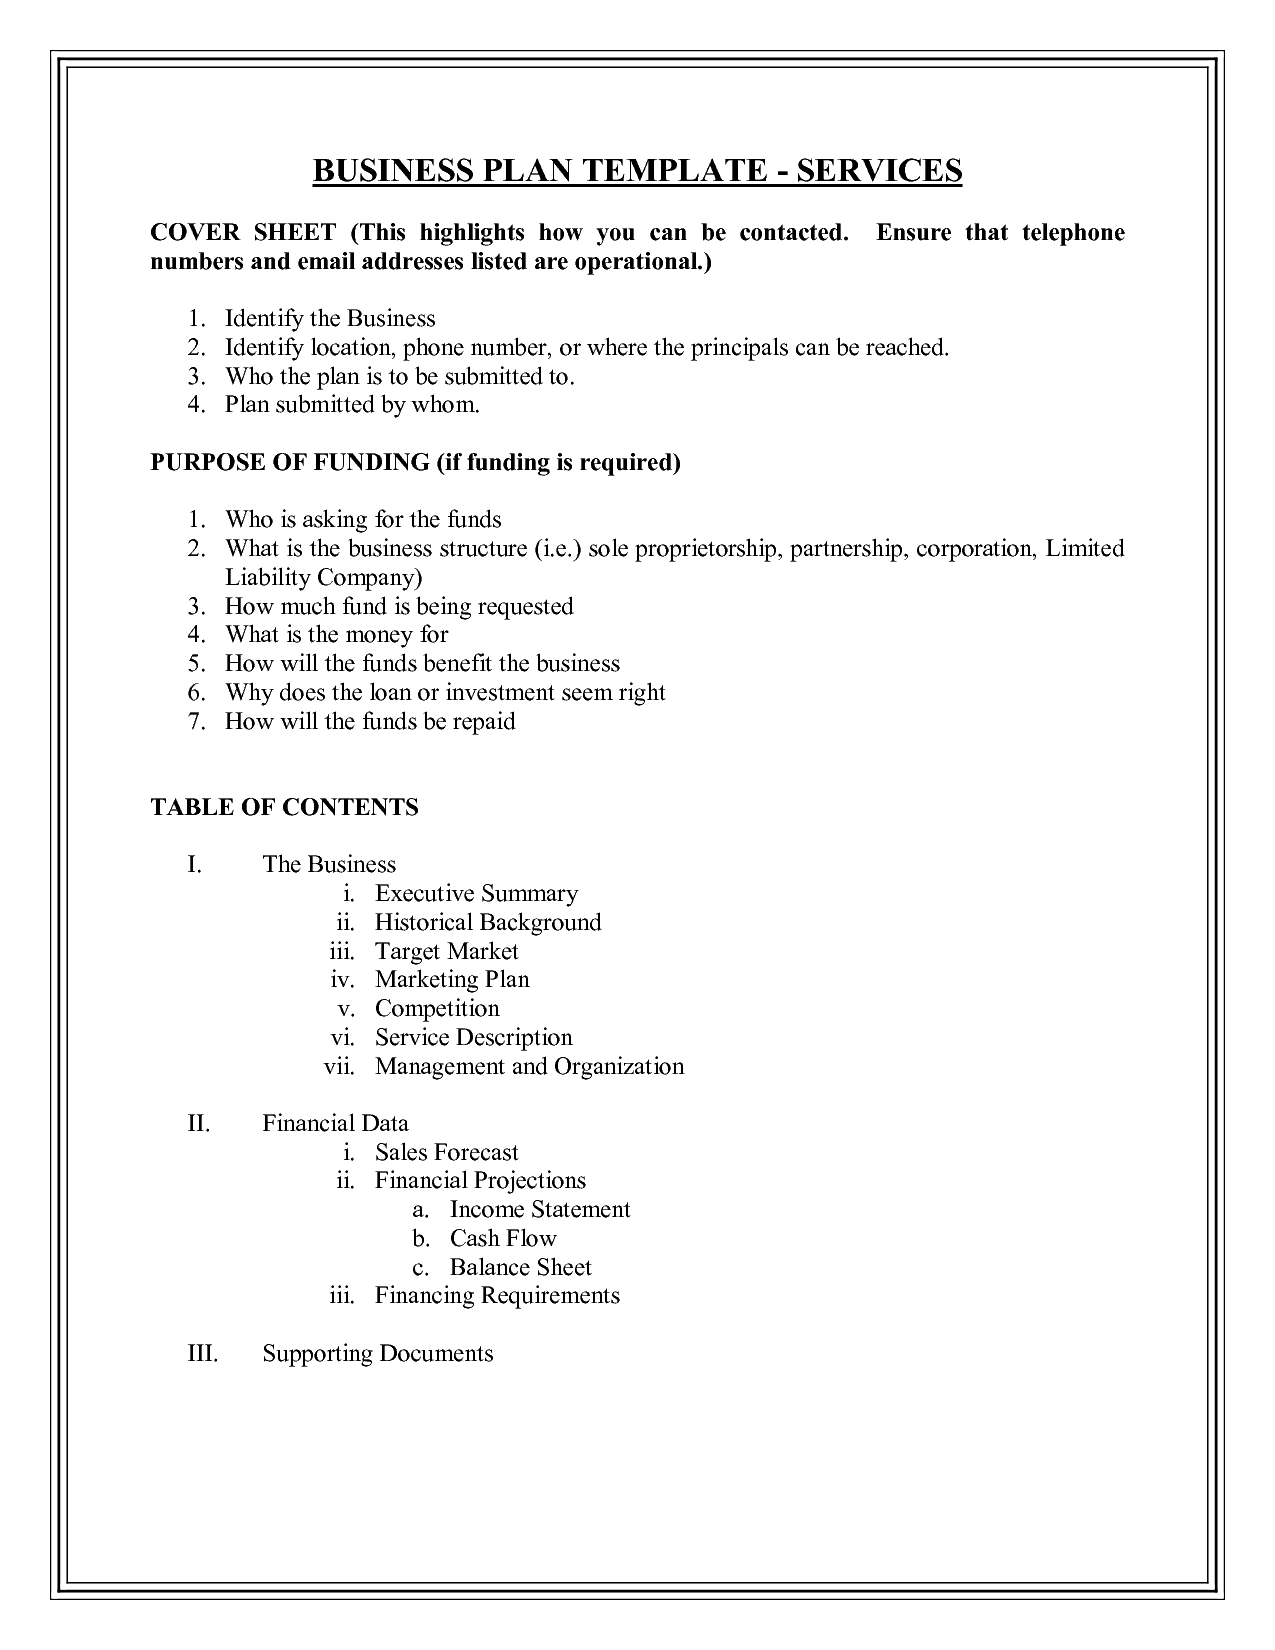 DOC-business-plan-outline-template